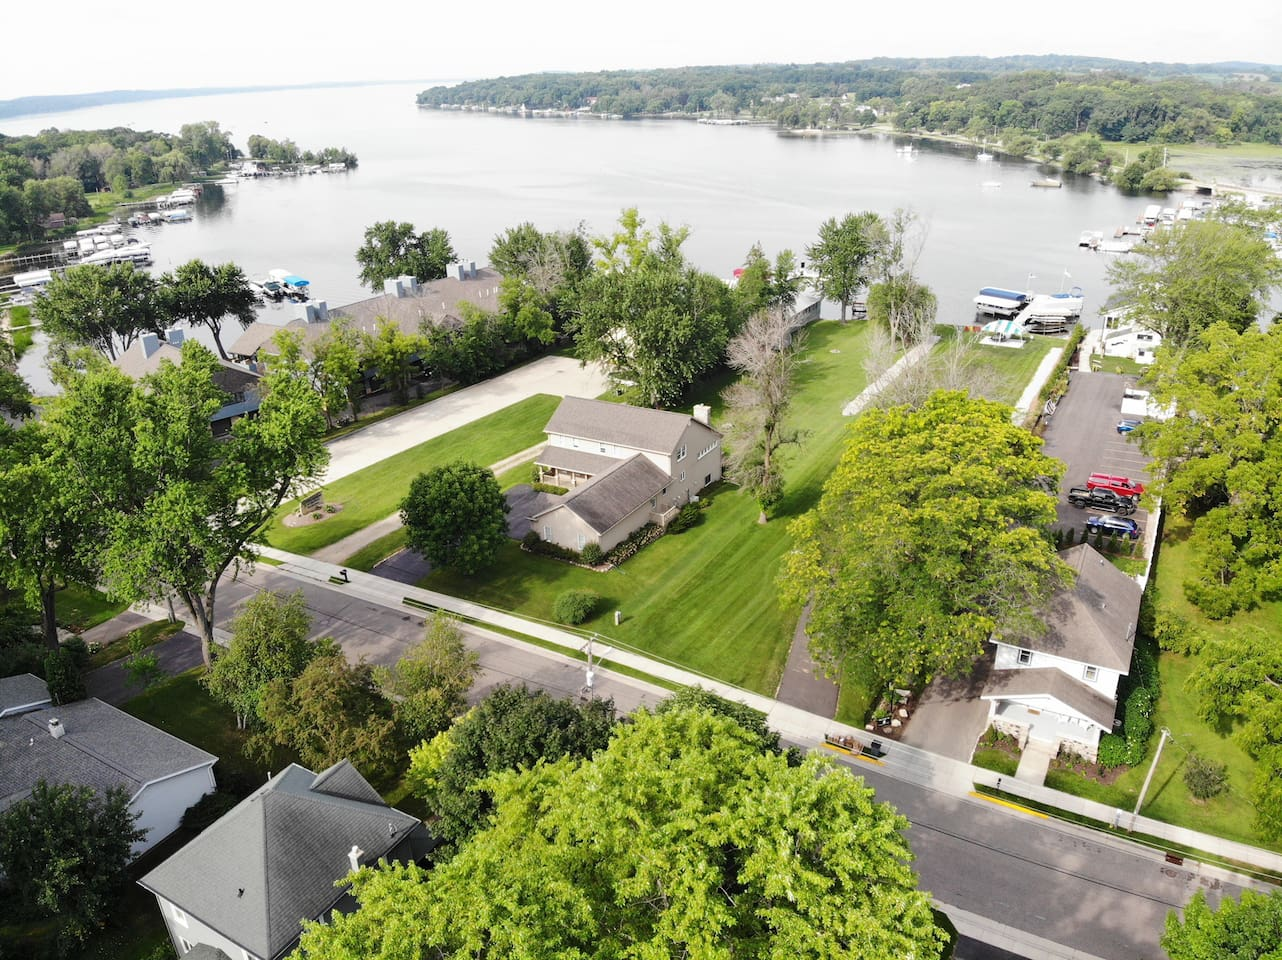 Note the distance from the house to the lake and access pier which surrounds the entire bay!